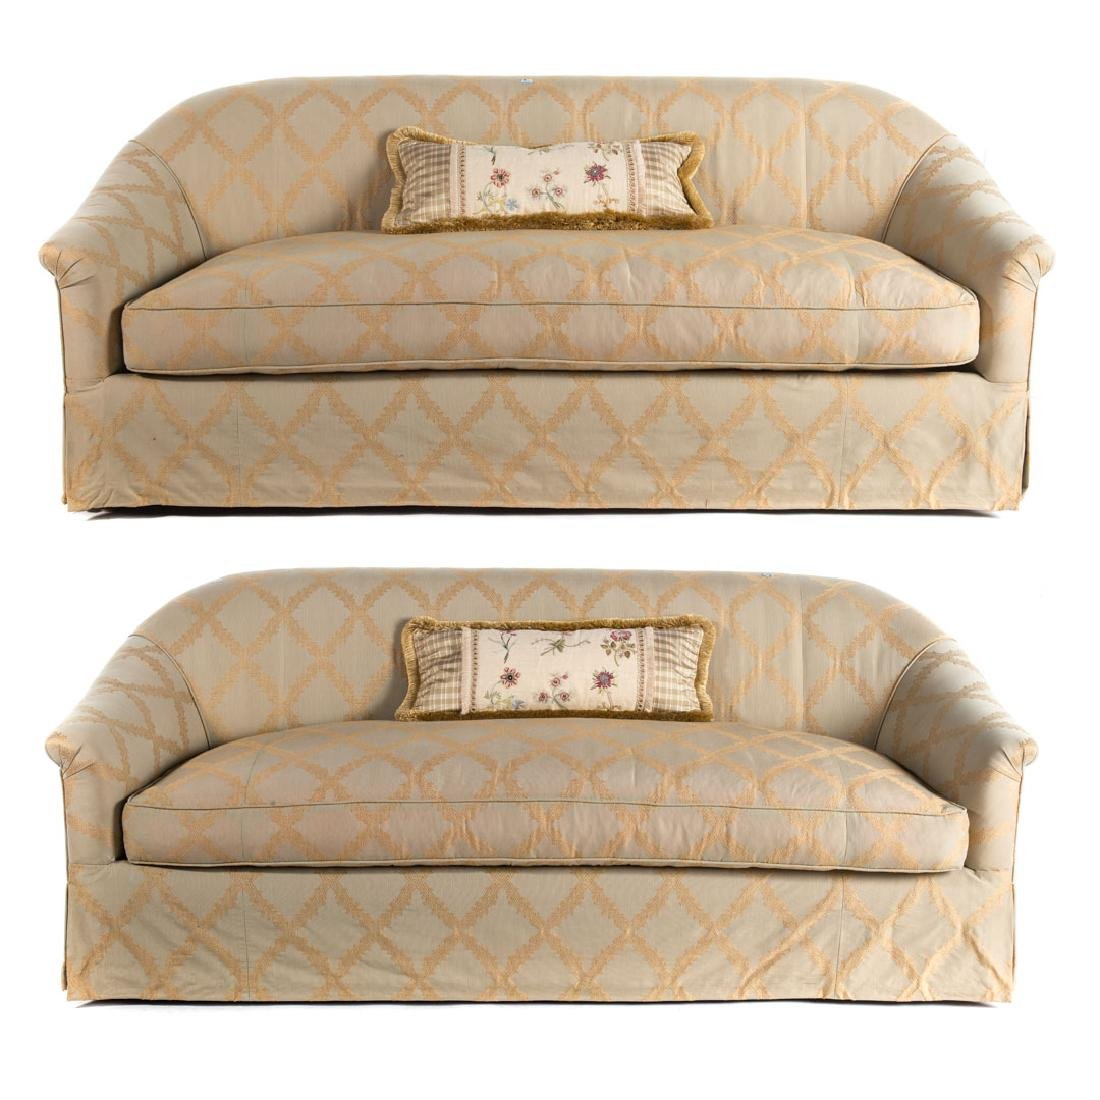 Pair R. Jones Contemporary upholstered sofas